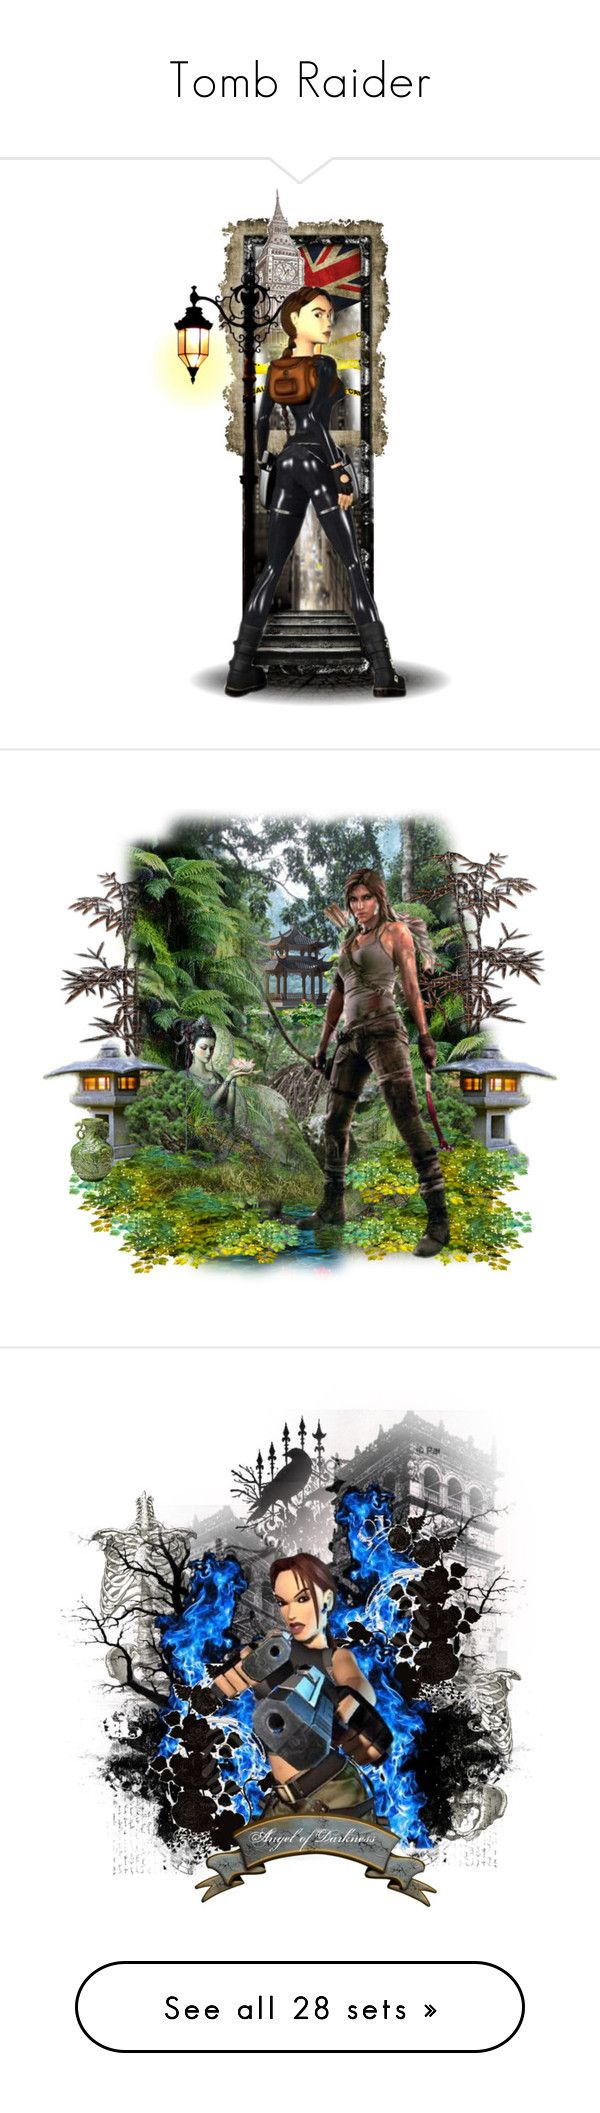 """""""Tomb Raider"""" by girlinthebigbox ❤ liked on Polyvore featuring tombraider, laracroft, art, videogames, underworld, games, RiseOfTheTombRaider and videogame"""